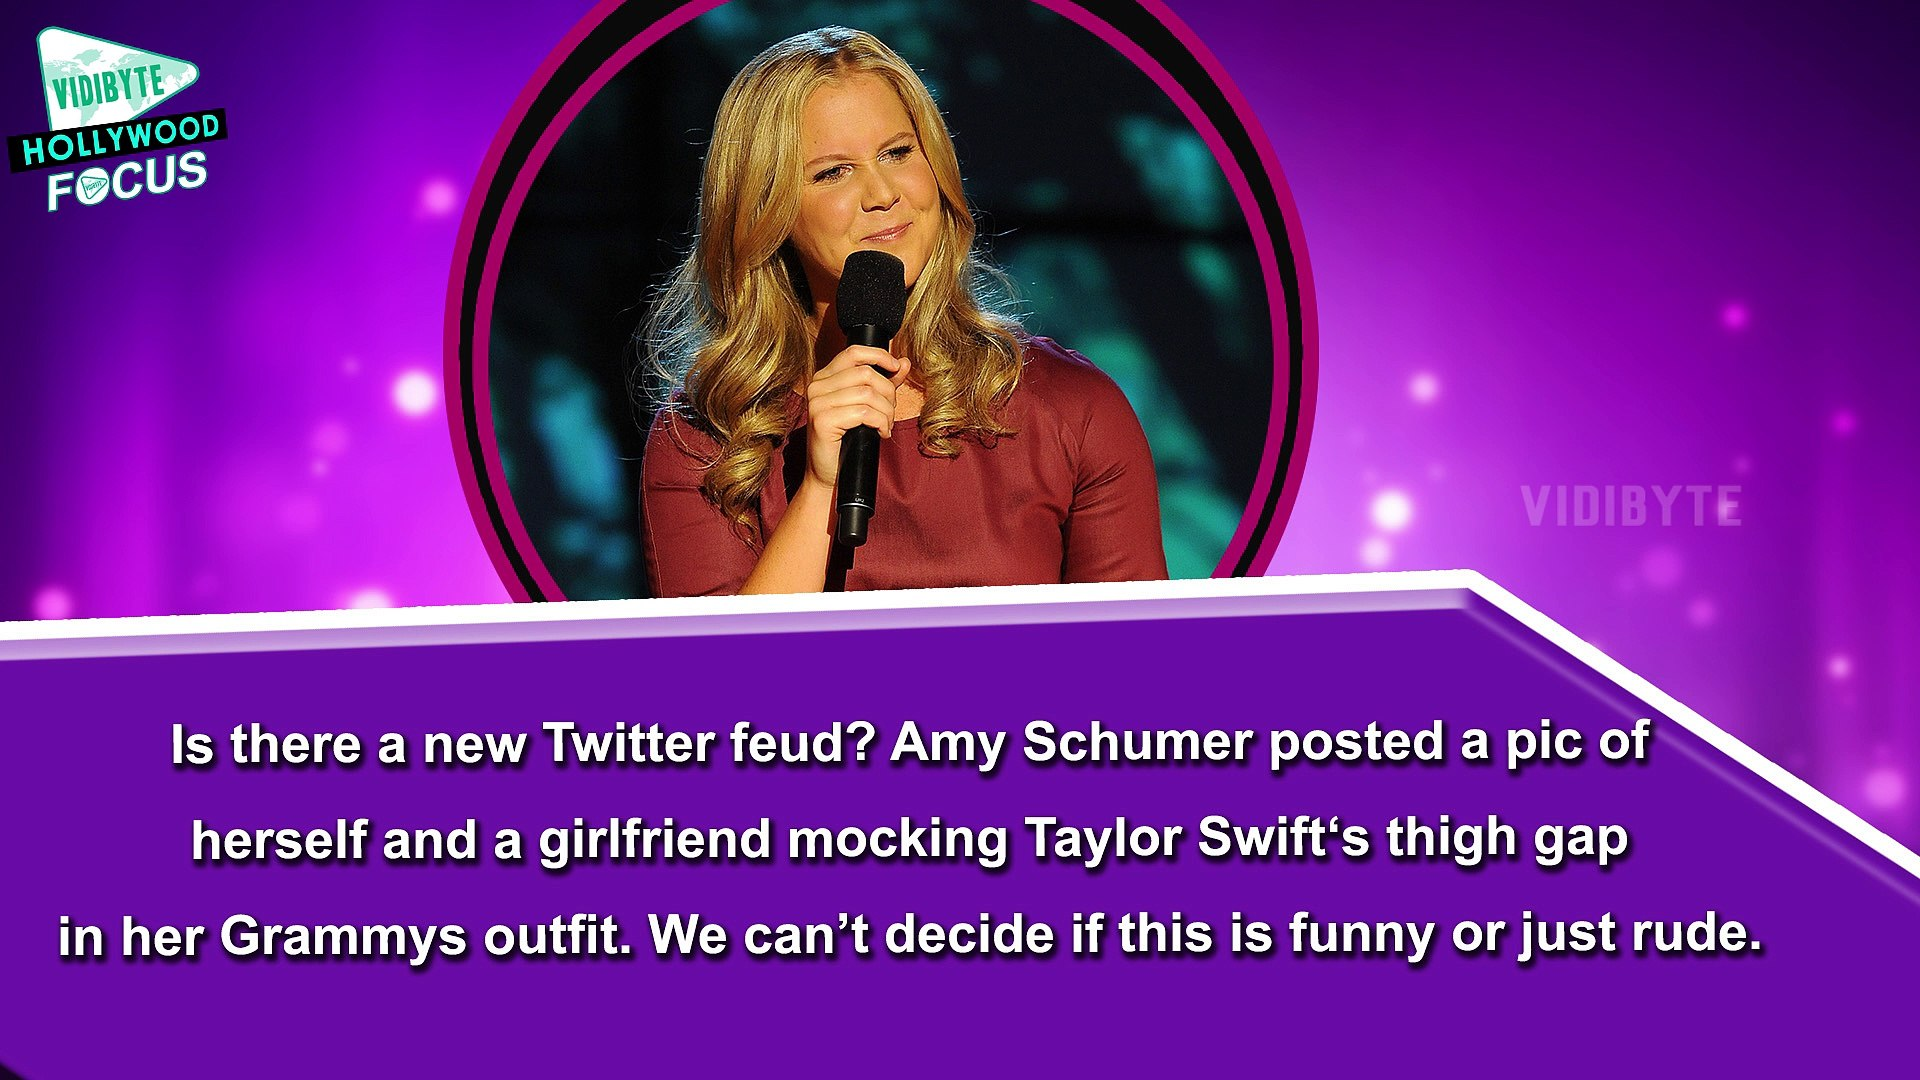 Amy Schumer Disses Taylor Swift's Thigh Gap With Scathing Instagram